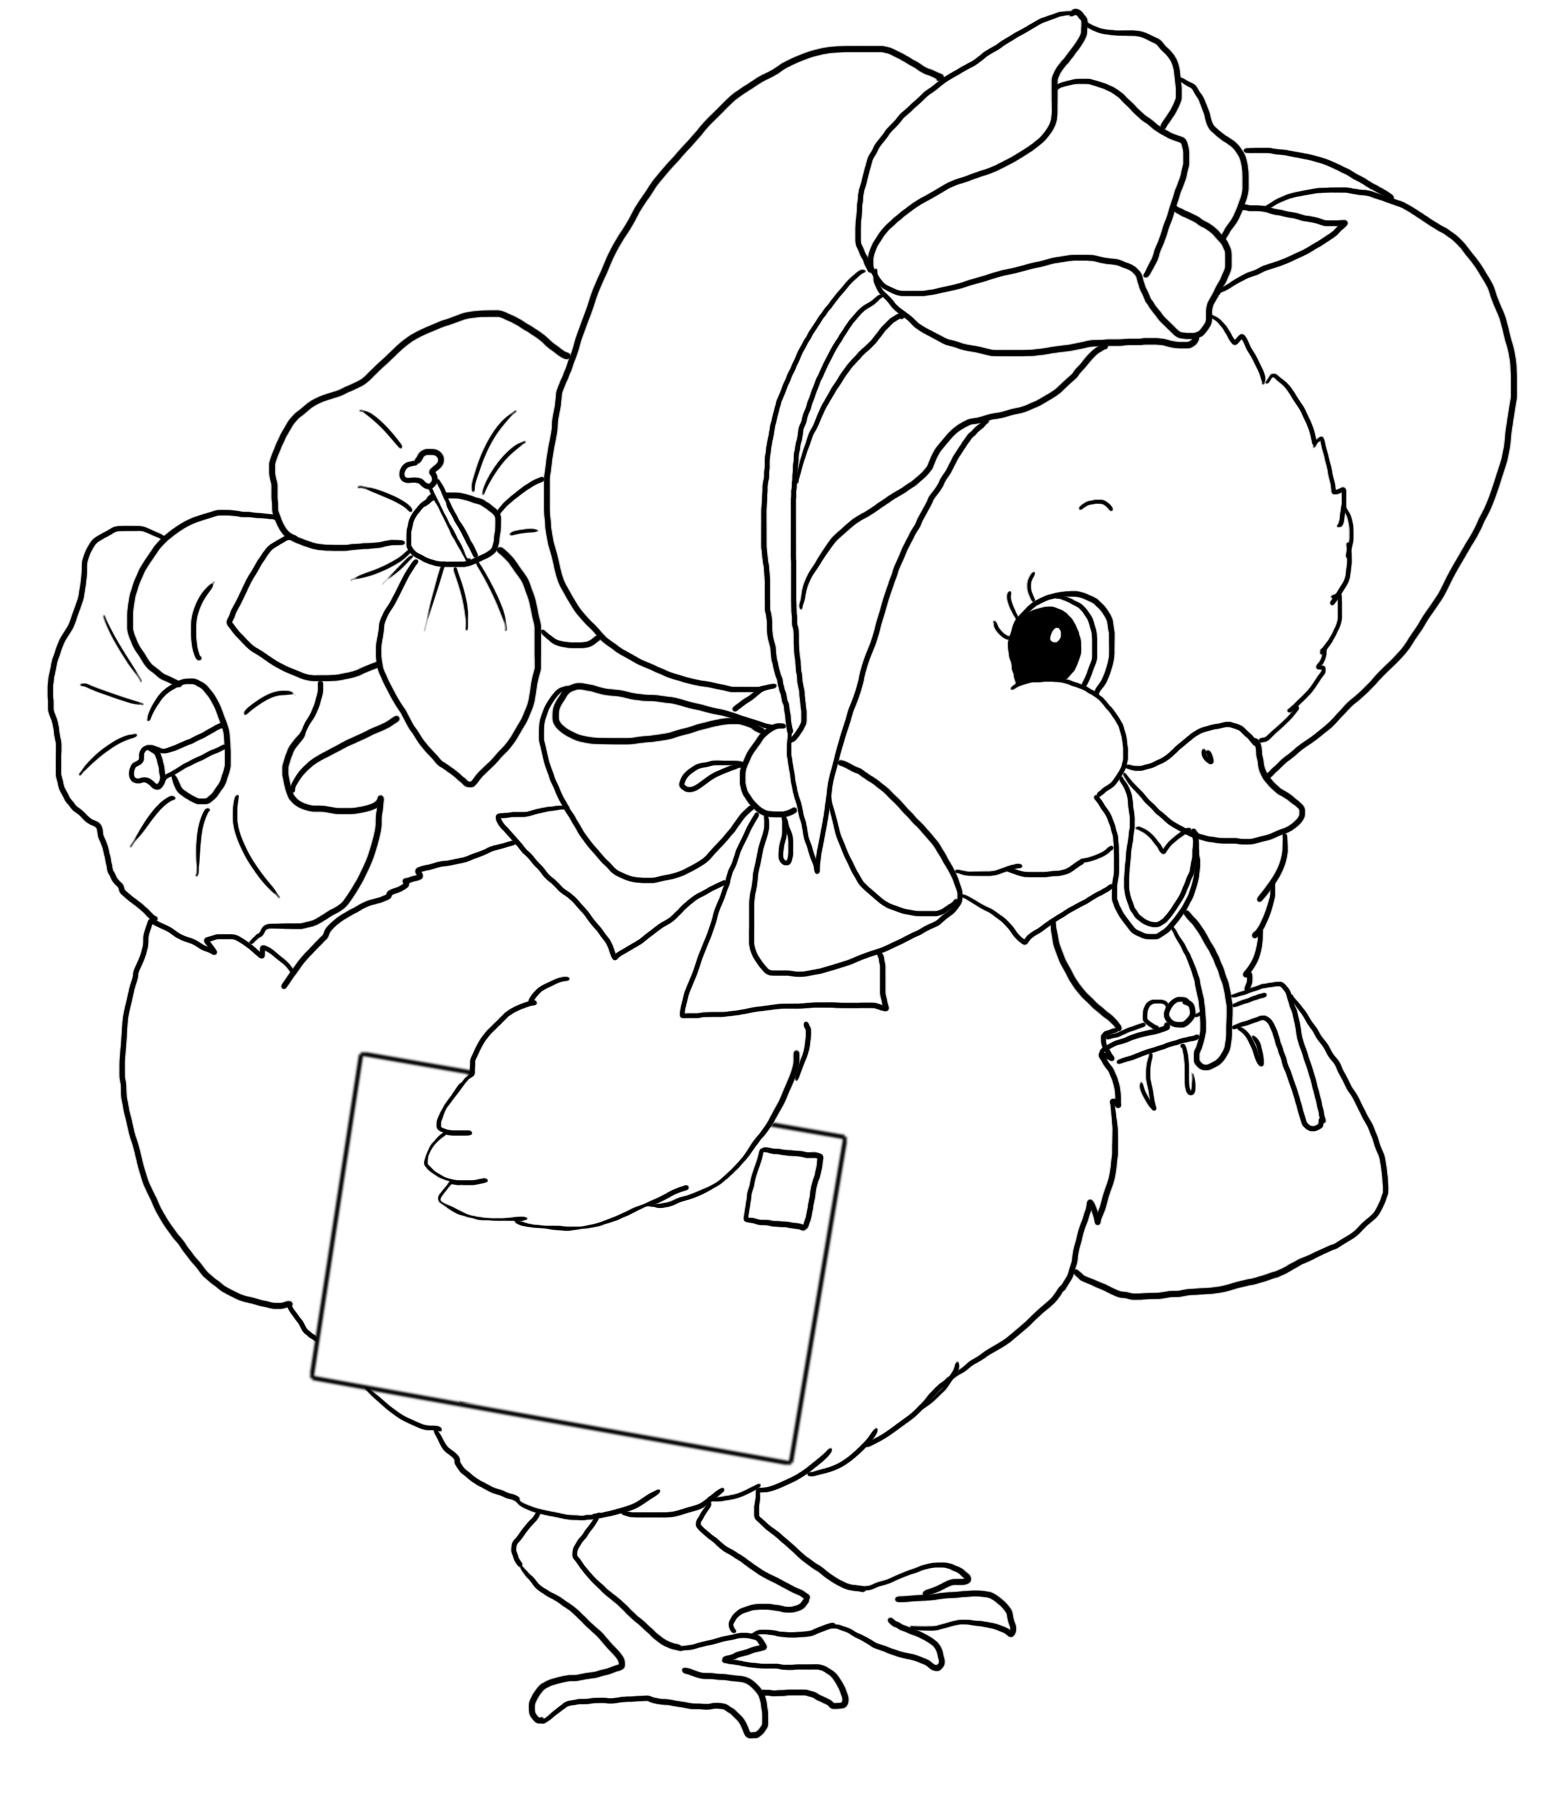 easter coloring sheets paw patrol easter coloring pages at getcoloringscom easter sheets coloring